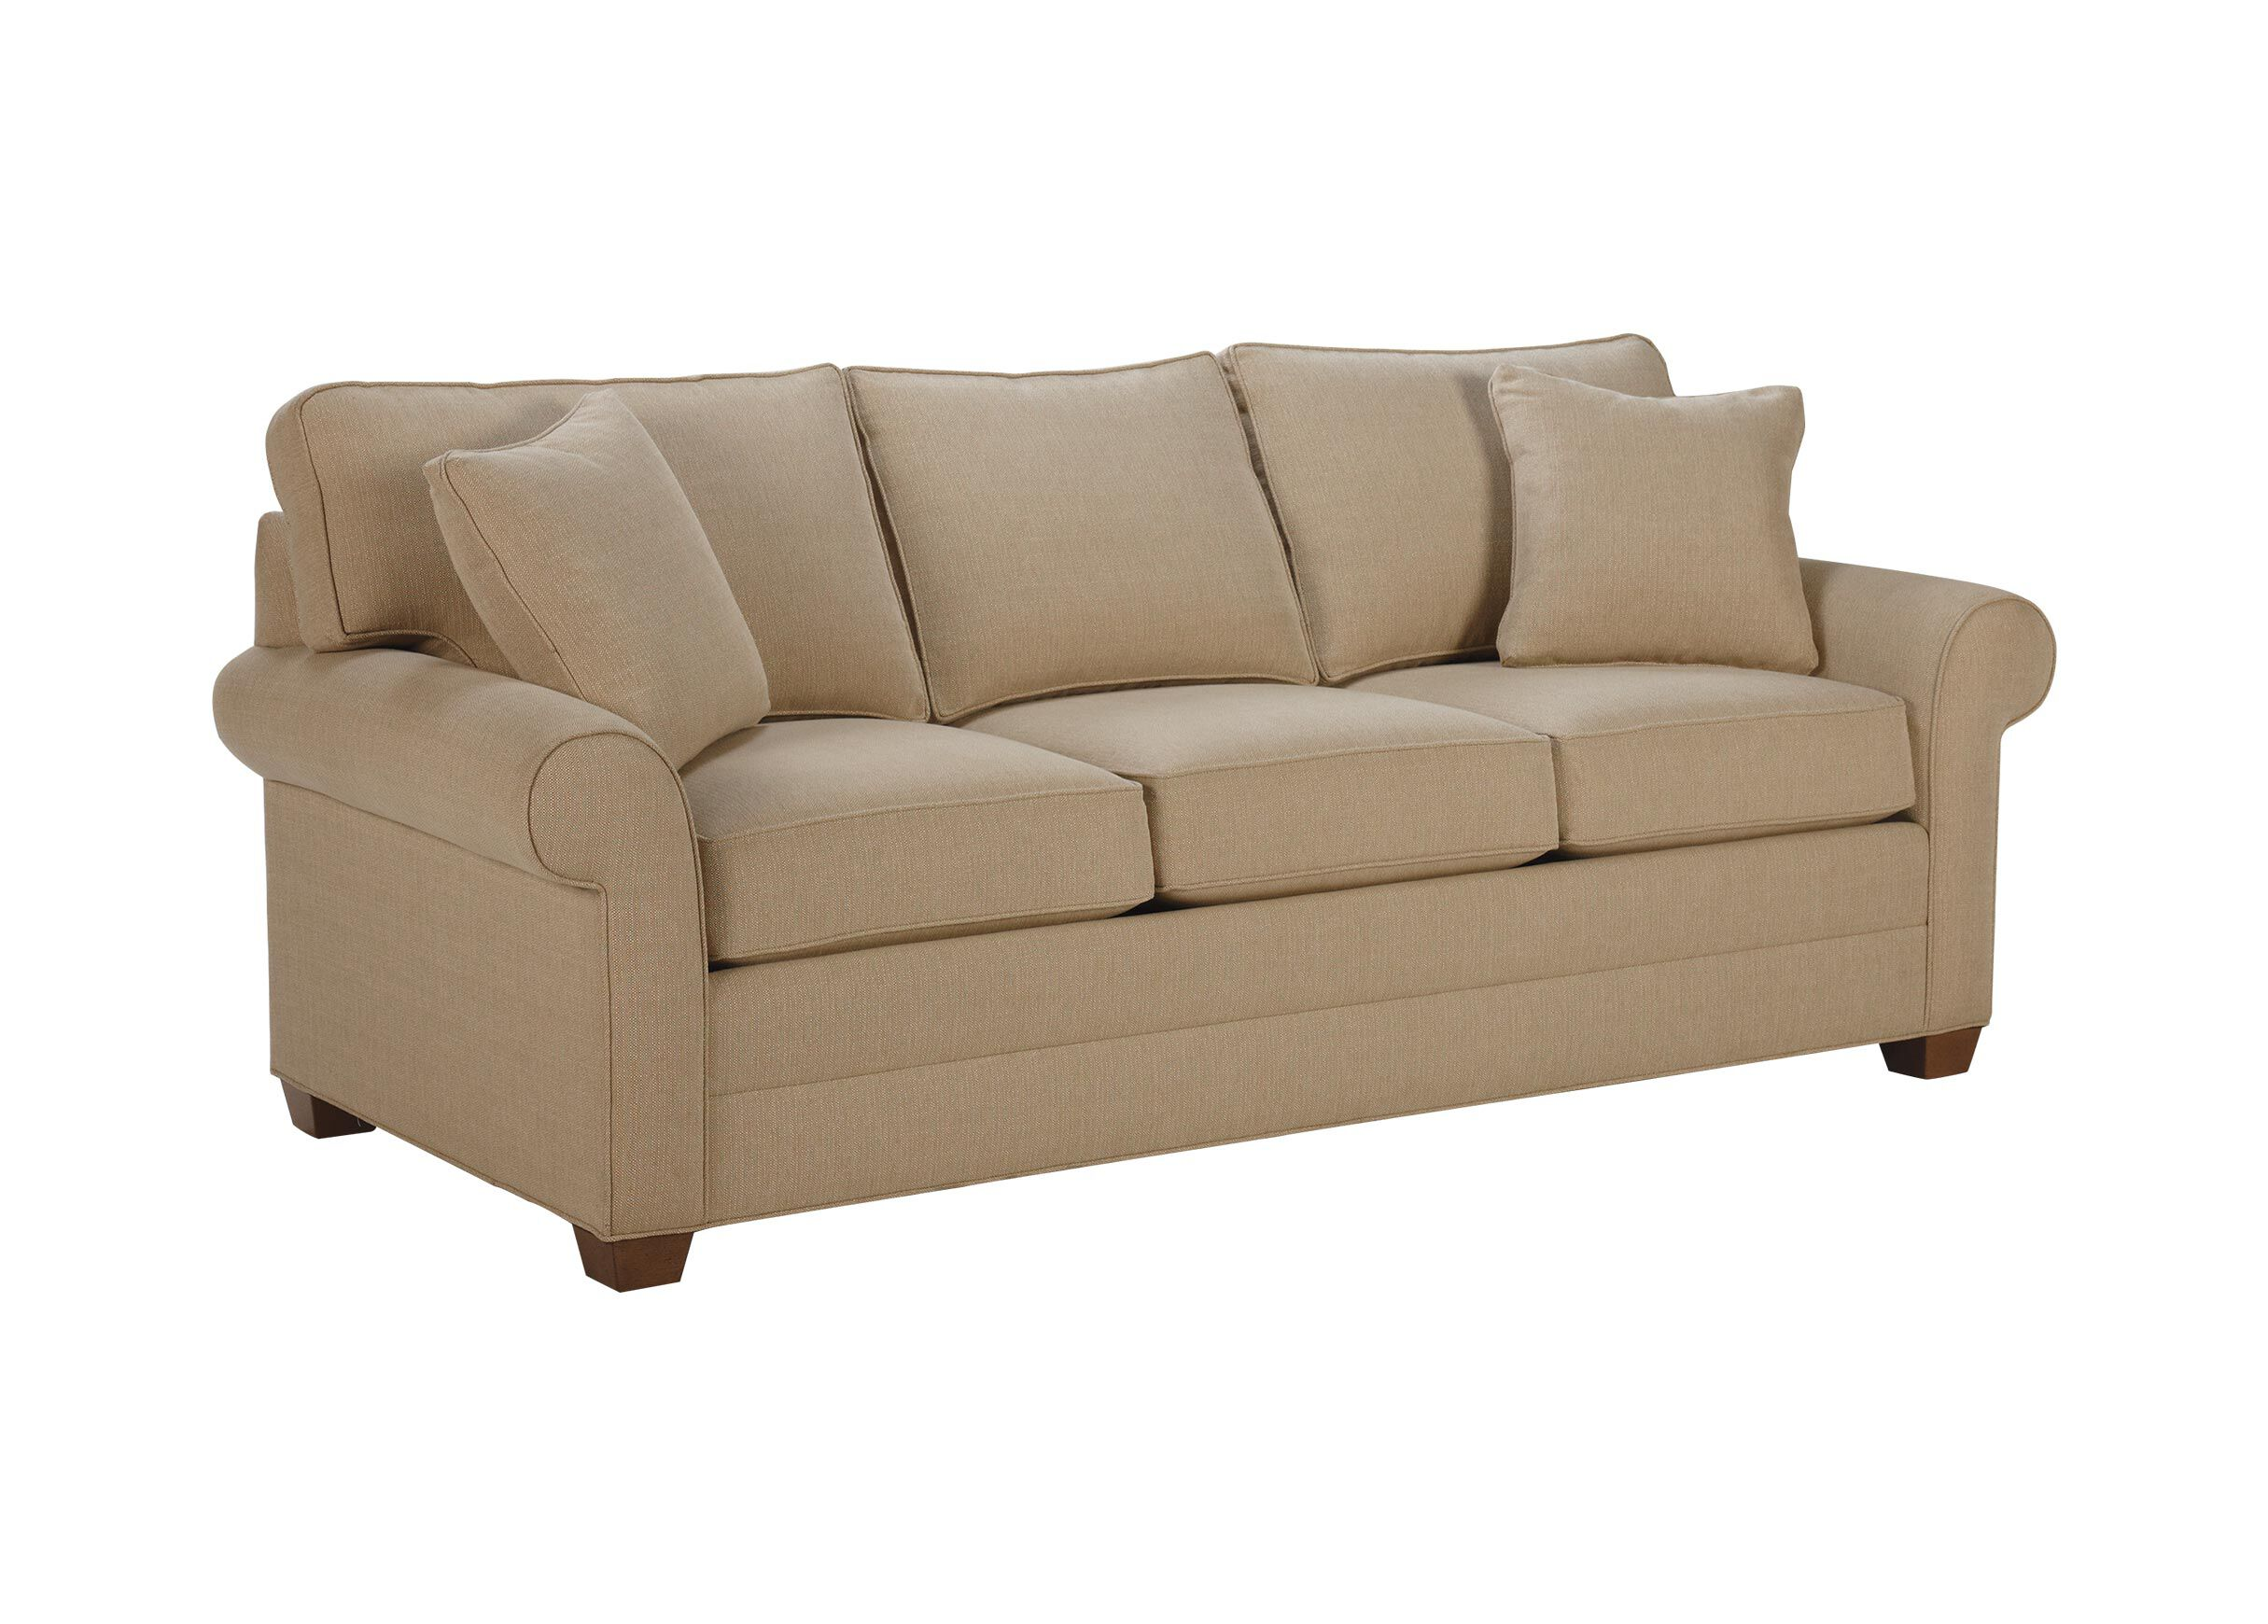 roll arm sofa canada natural way to clean fabric bennett loveseat ethan allen